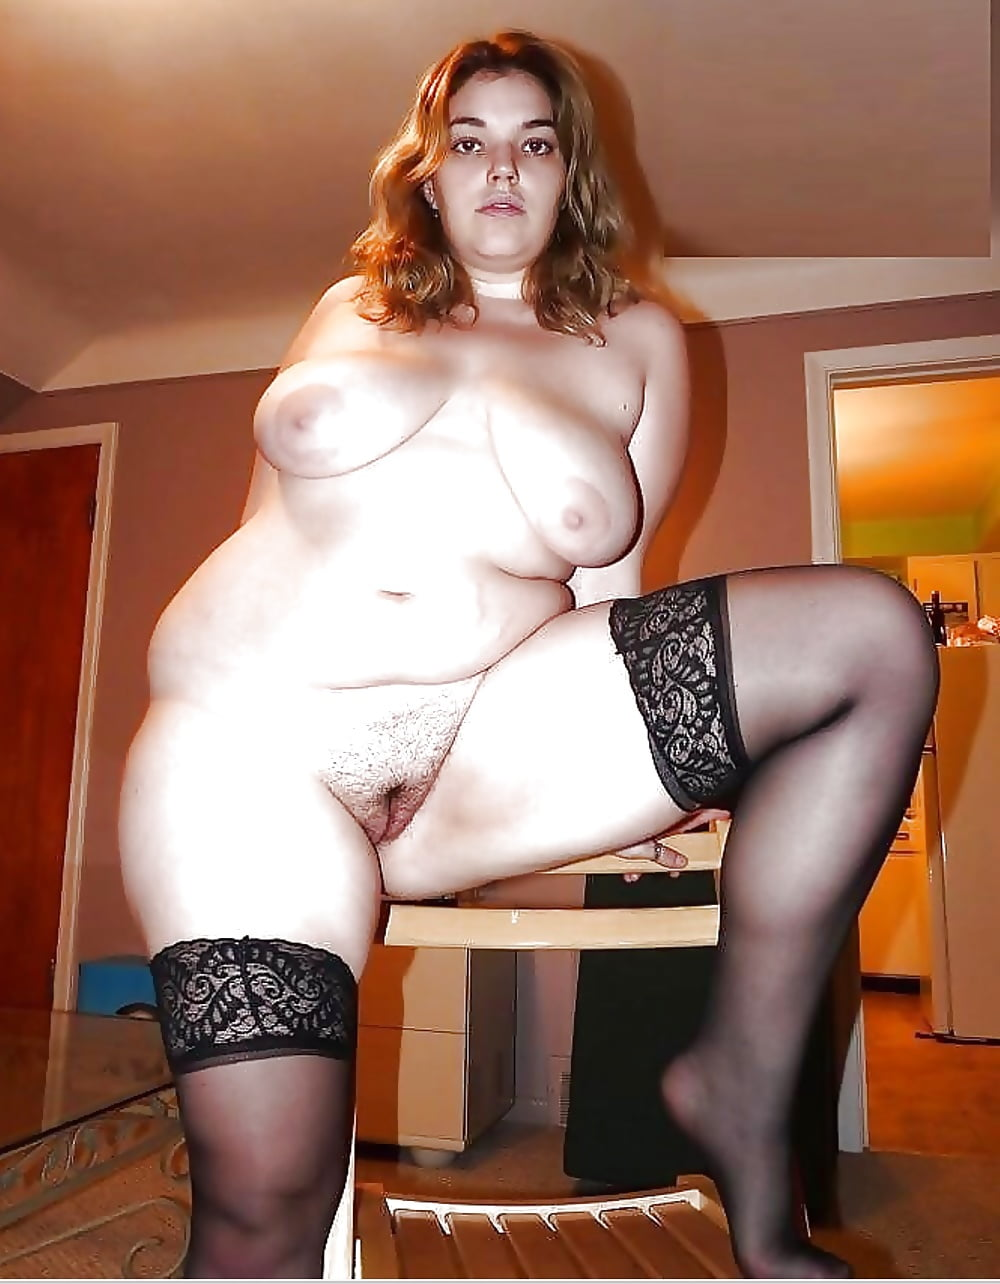 Hard fuck chubby nude middle aged